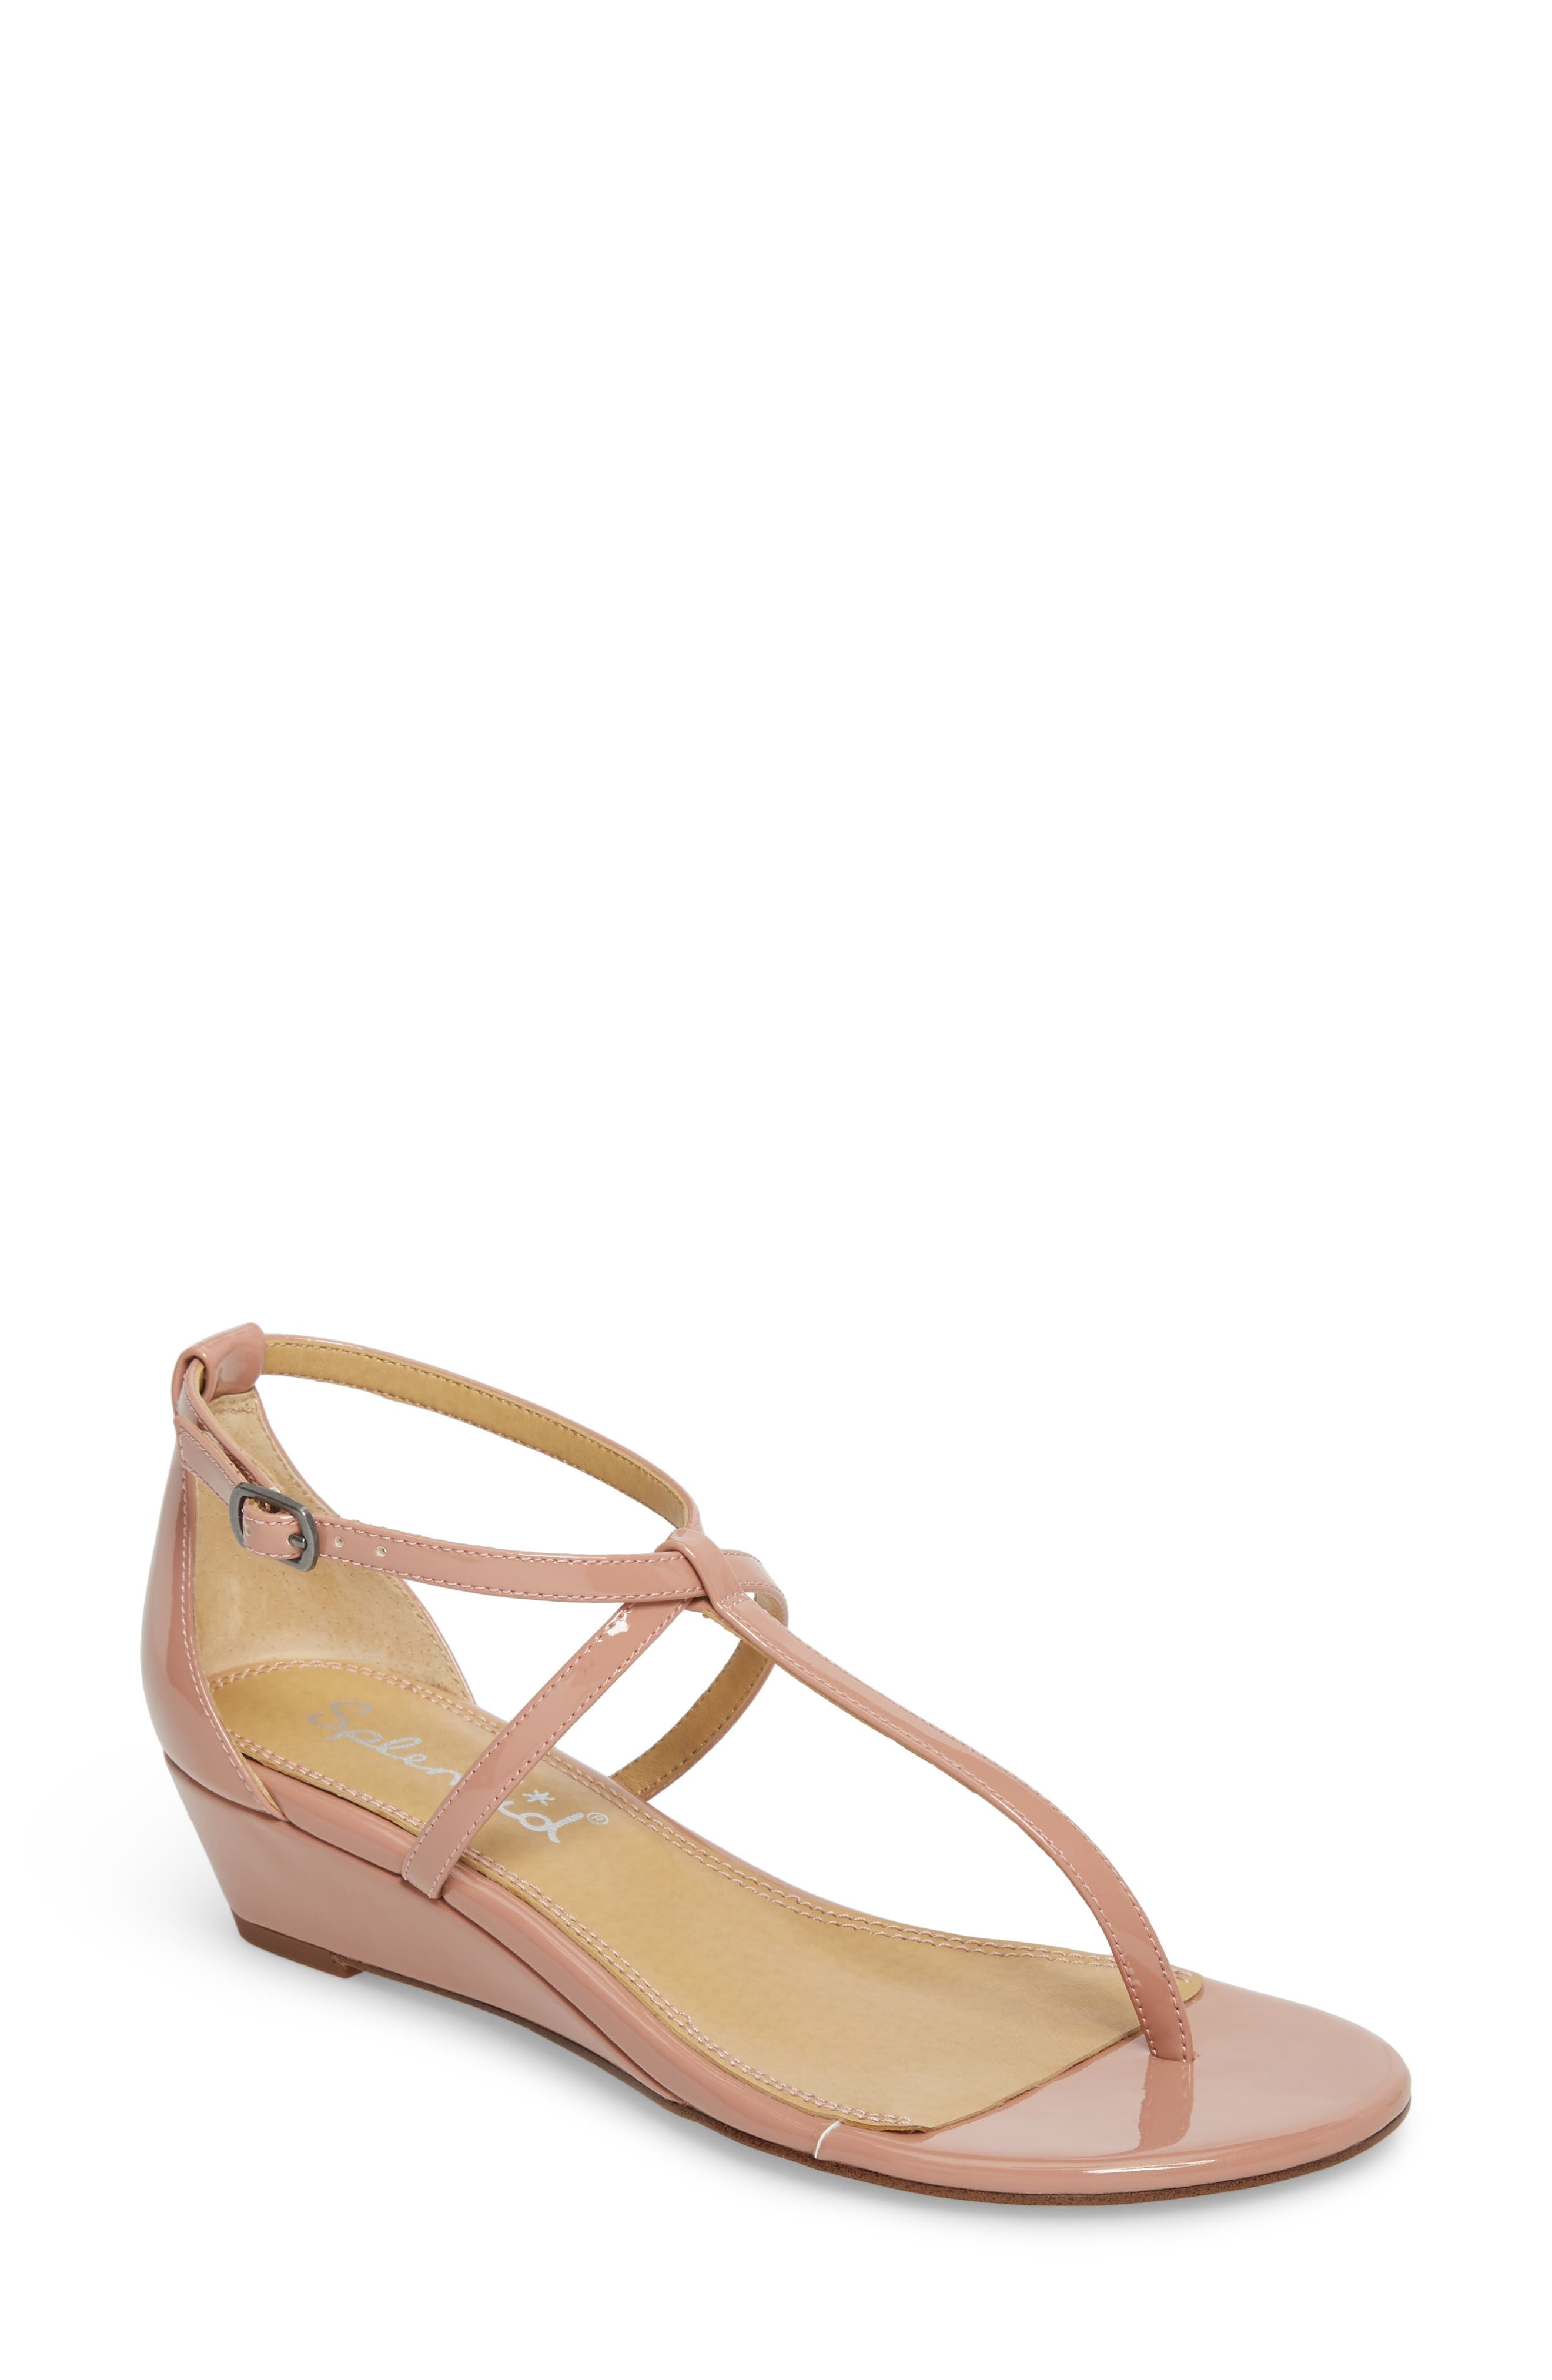 Bryce T-Strap Wedge Sandal,                             Main thumbnail 5, color,